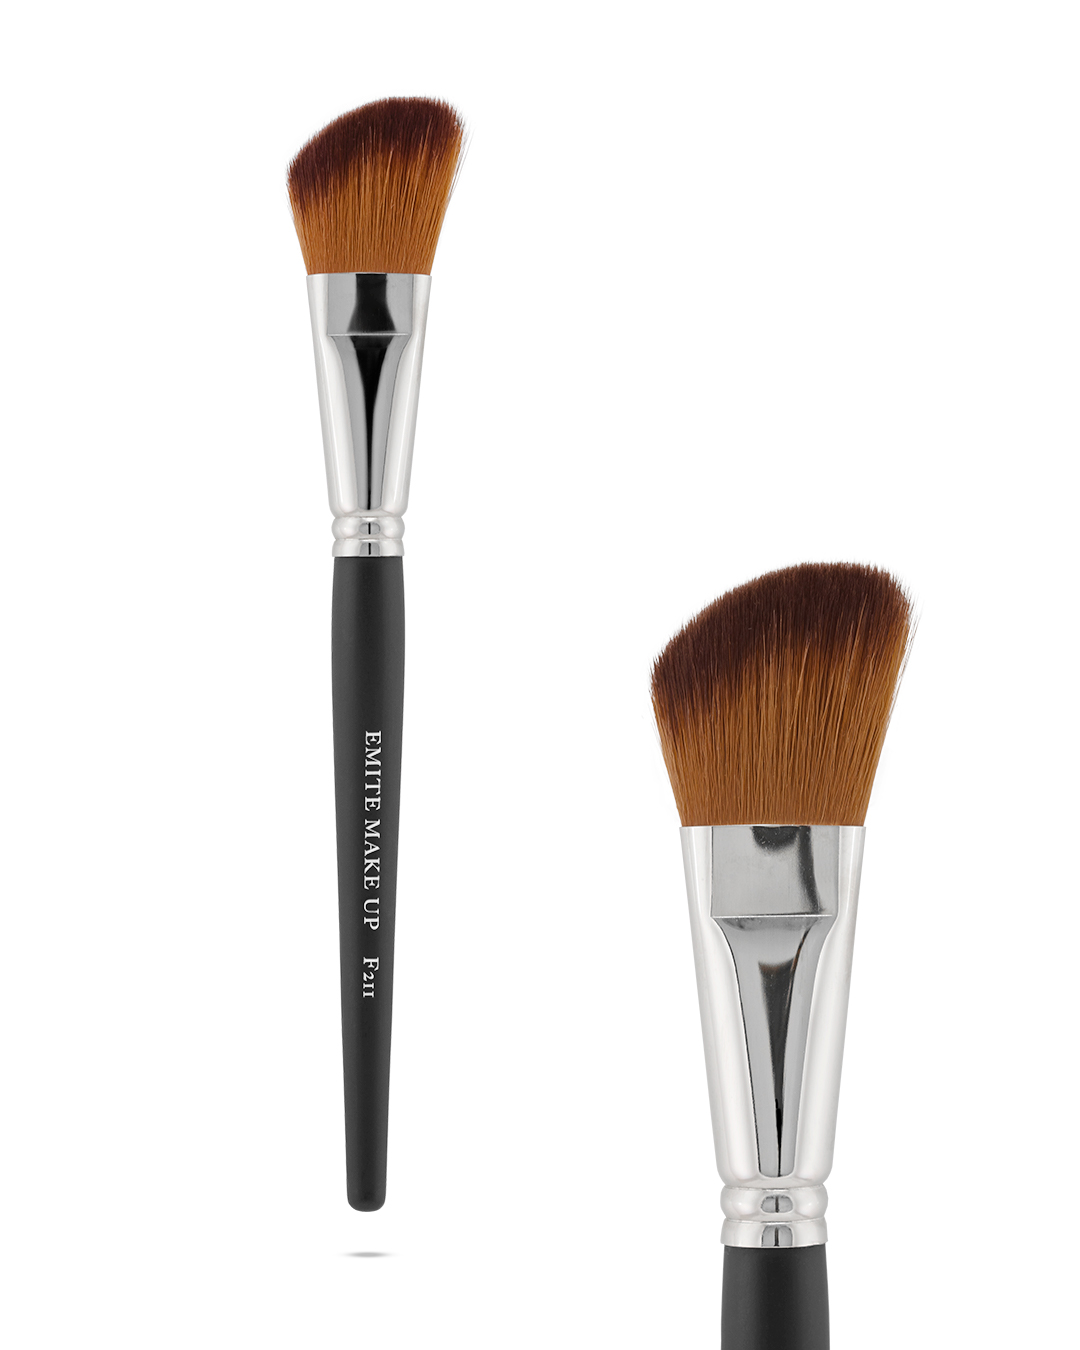 FOUNDATION / CONTOUR BRUSH F211